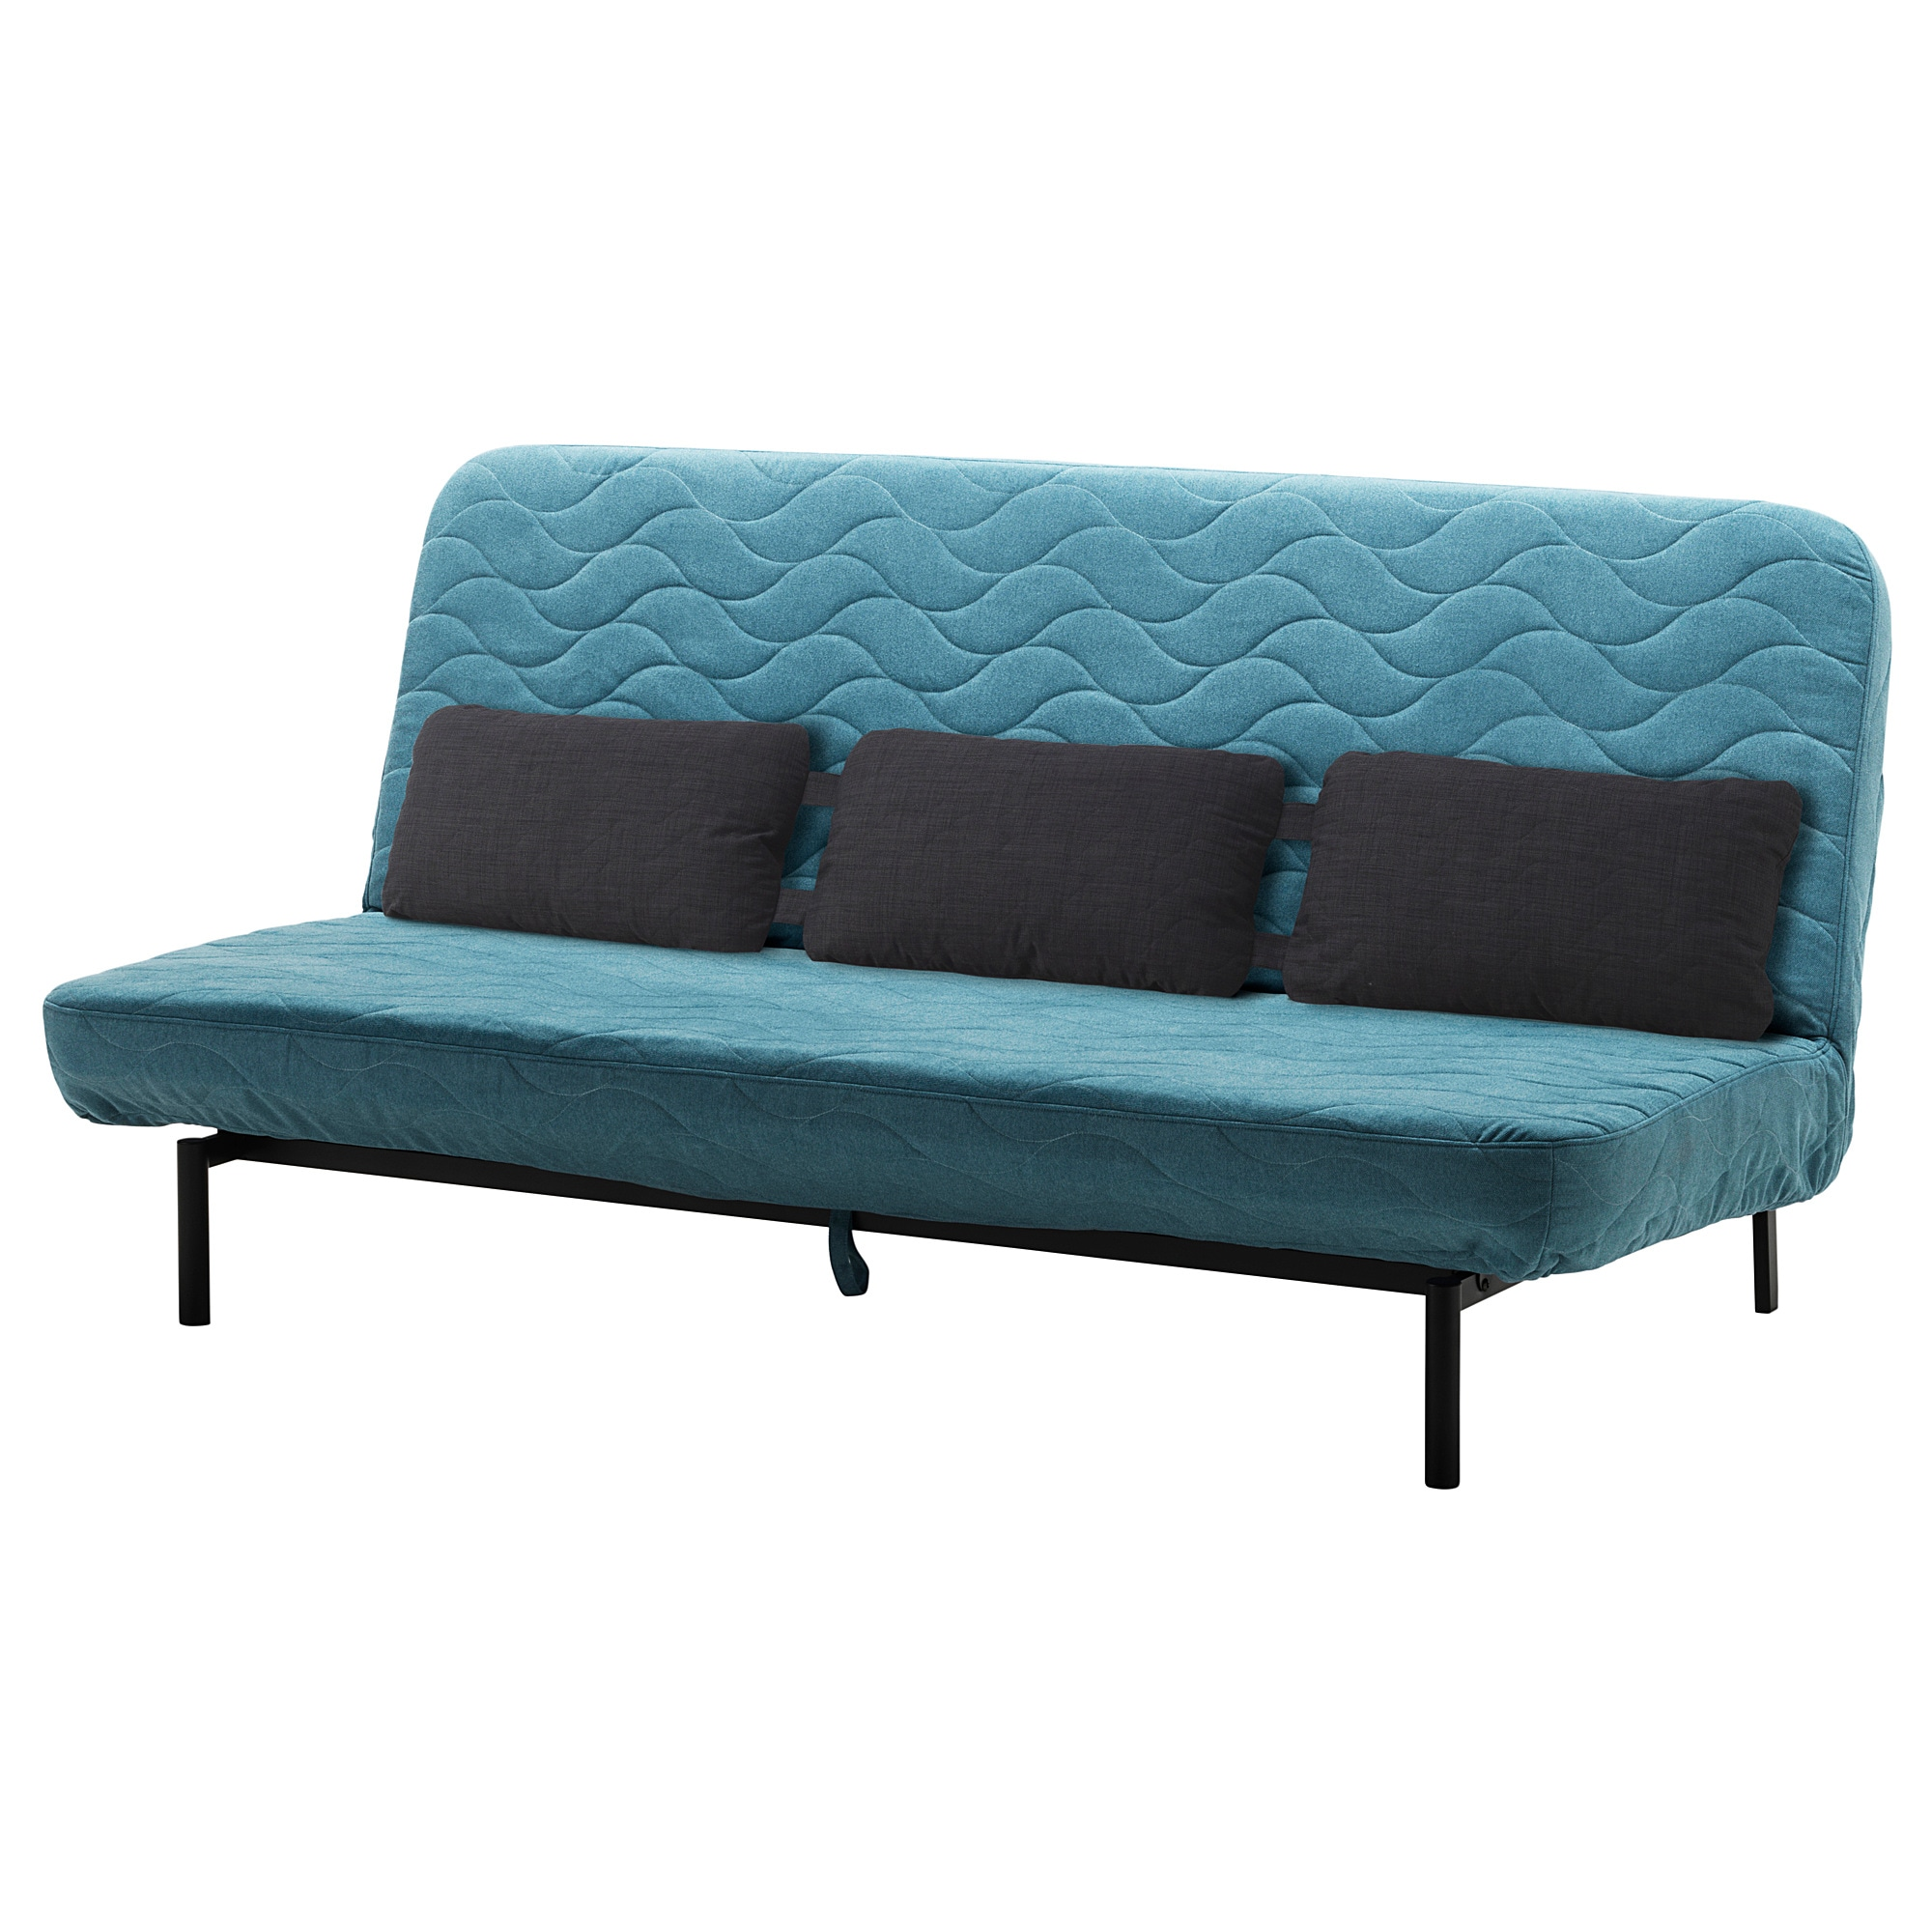 NYHAMN Sleeper sofa with triple cushion   with foam mattress